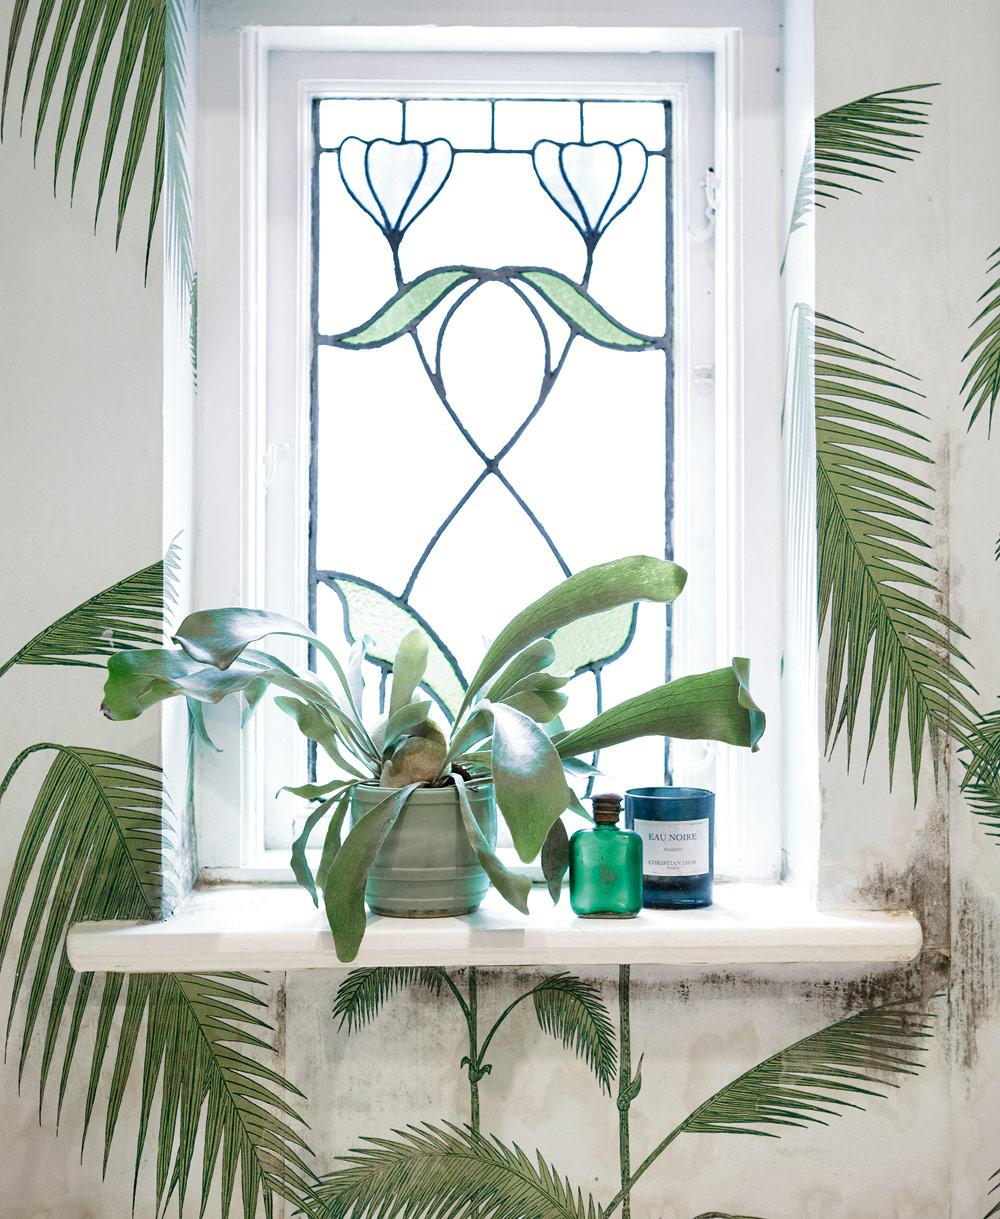 Art-nouveau-window-with-decor-below-From-Skona-Hem-Magazine-Cole-Son-palm-wallpaper-wp3003318